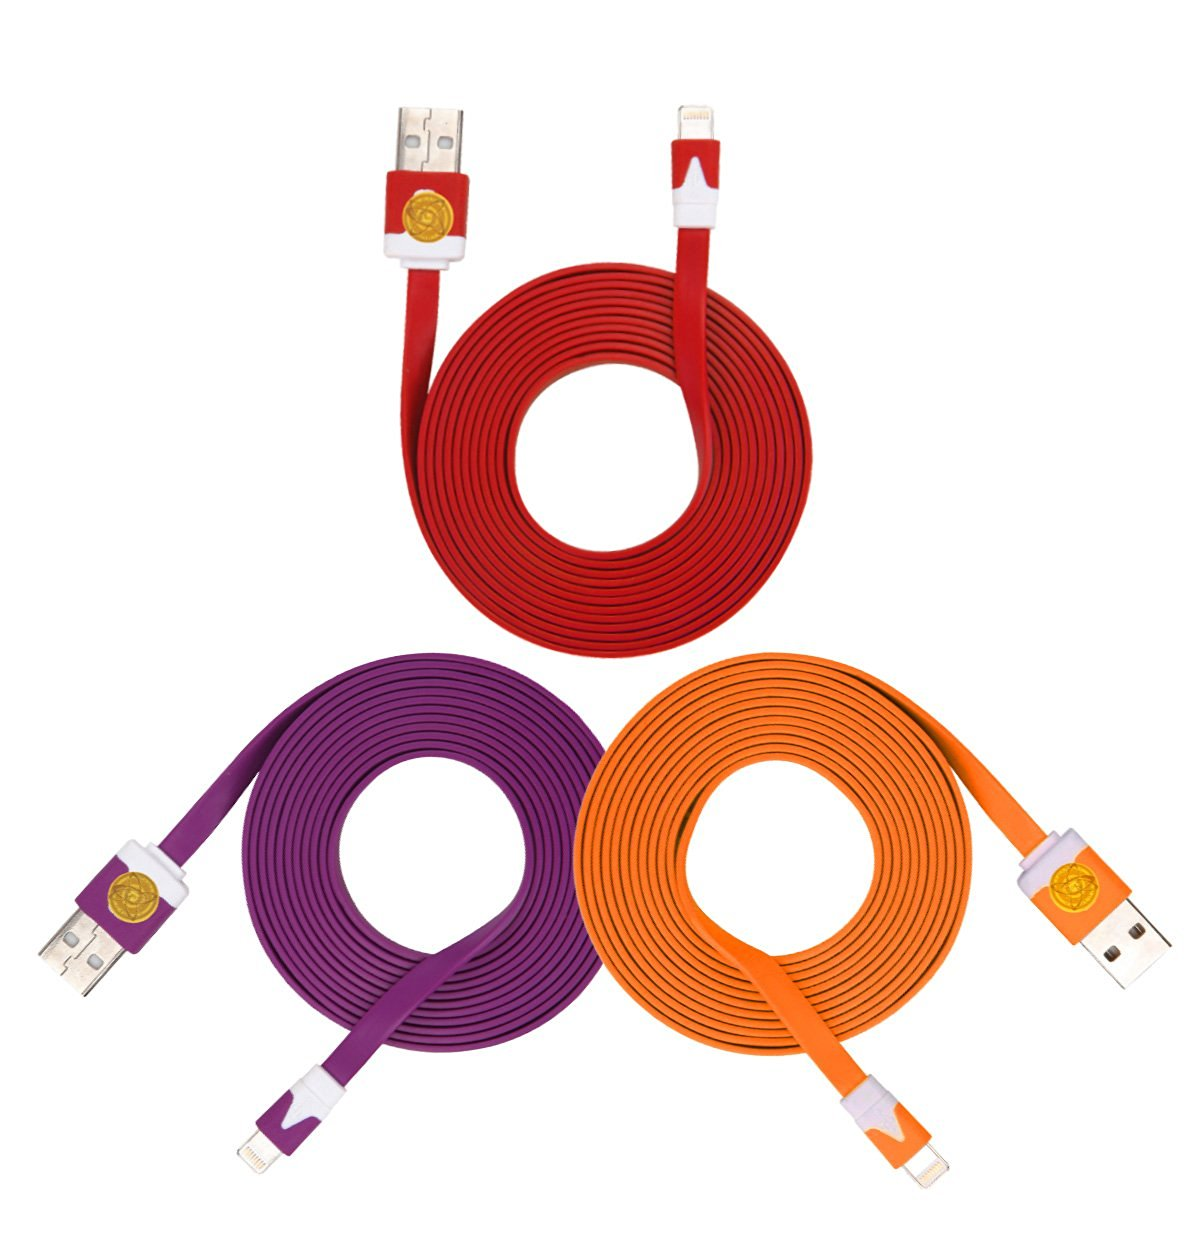 2M Heavy Duty Flat Noodle Lightning USB Cable for Apple iPhone 6,6S -Ple Red Org